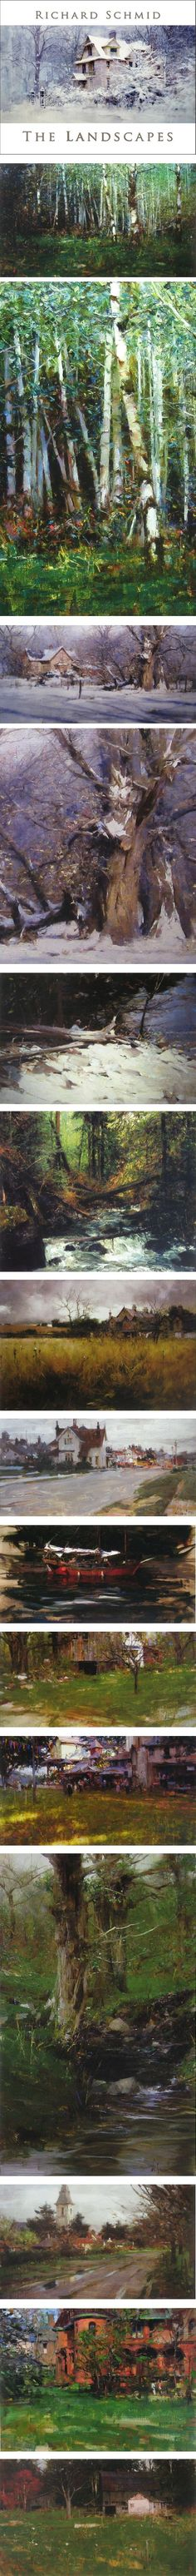 Richard Schmid: The Landscapes | Lines and Colors :: a blog about drawing, painting, illustration, comics, concept art and other visual arts